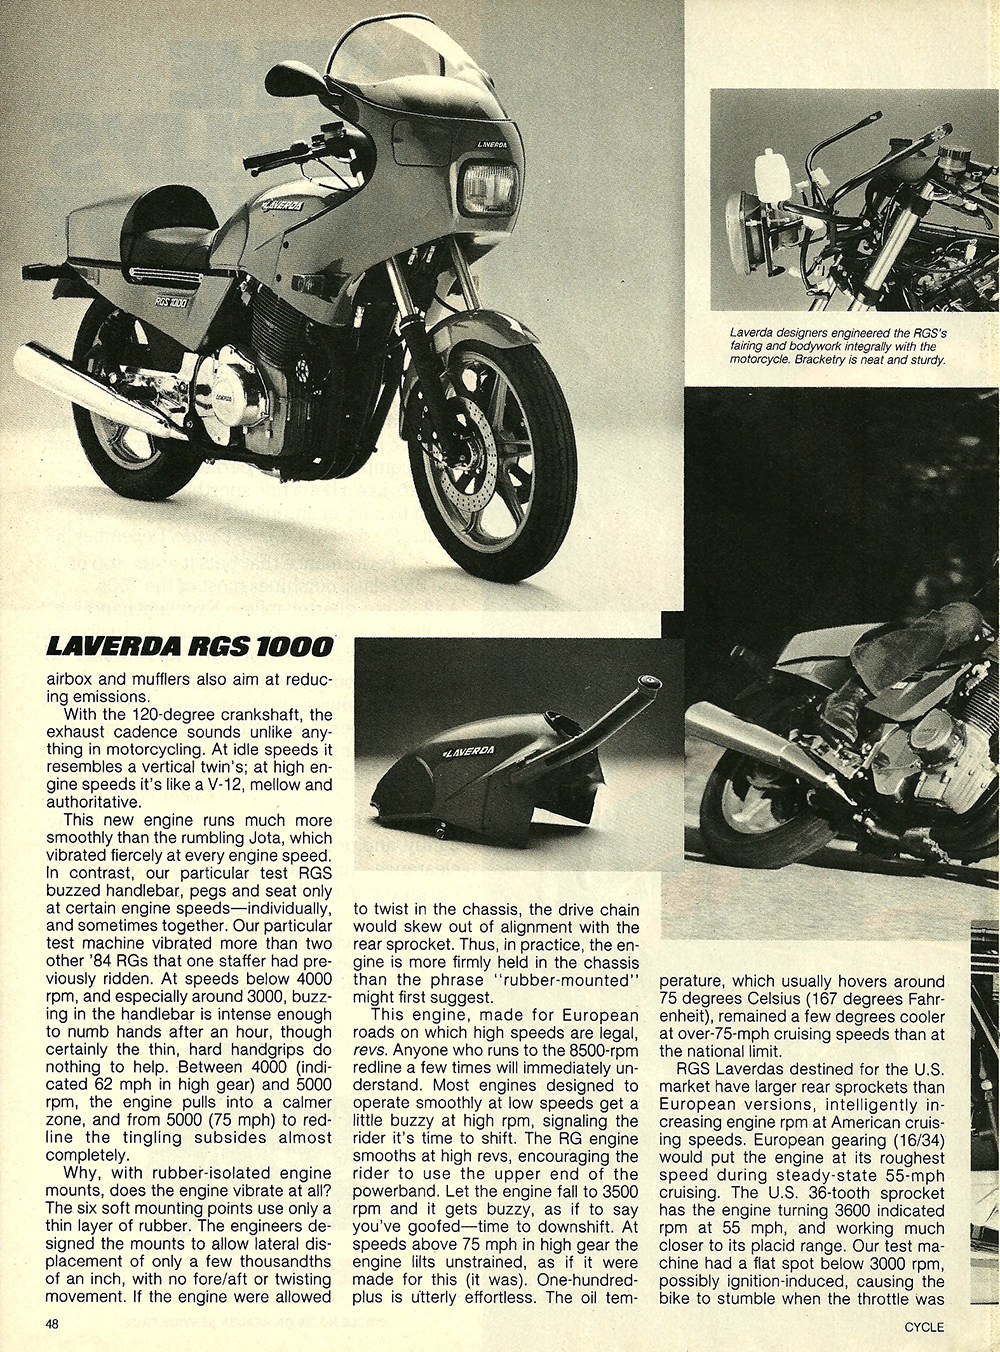 1984 Laverda RGS 1000 road test 5.jpg